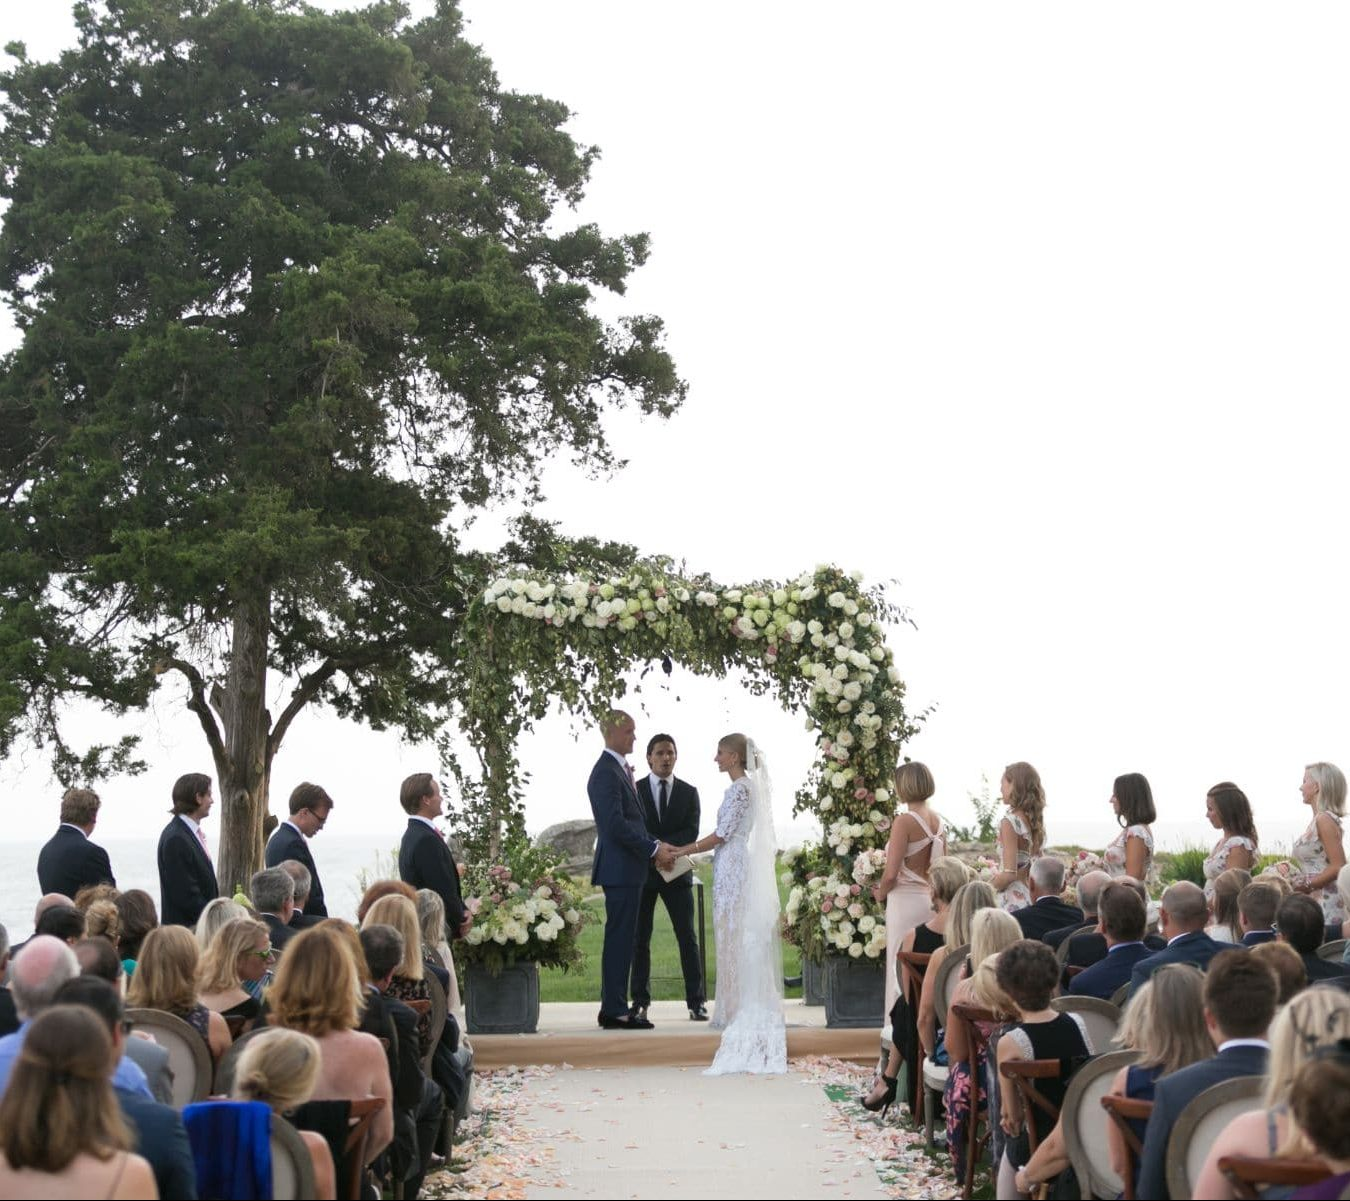 Bride and groom during outdoor ceremony.